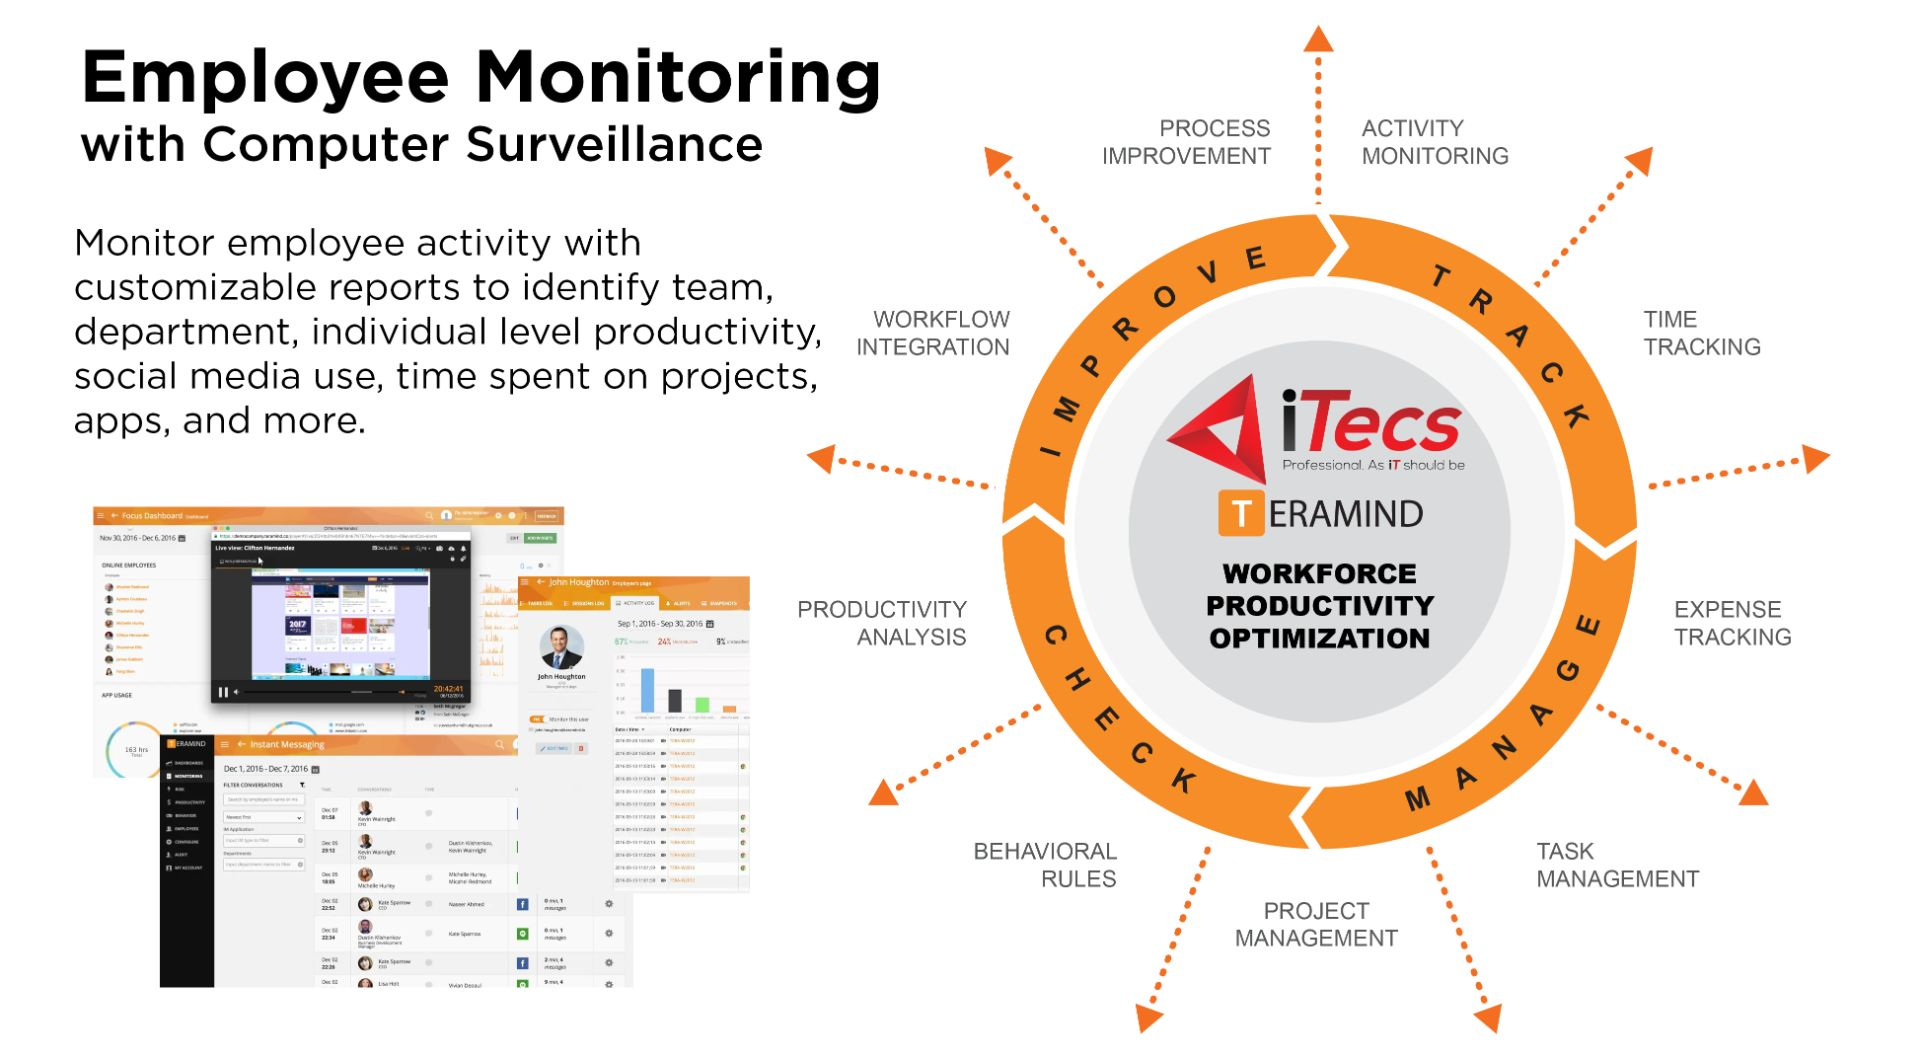 Employee Monitoring with Computer Surveillance by a Dallas Managed IT Services Firm